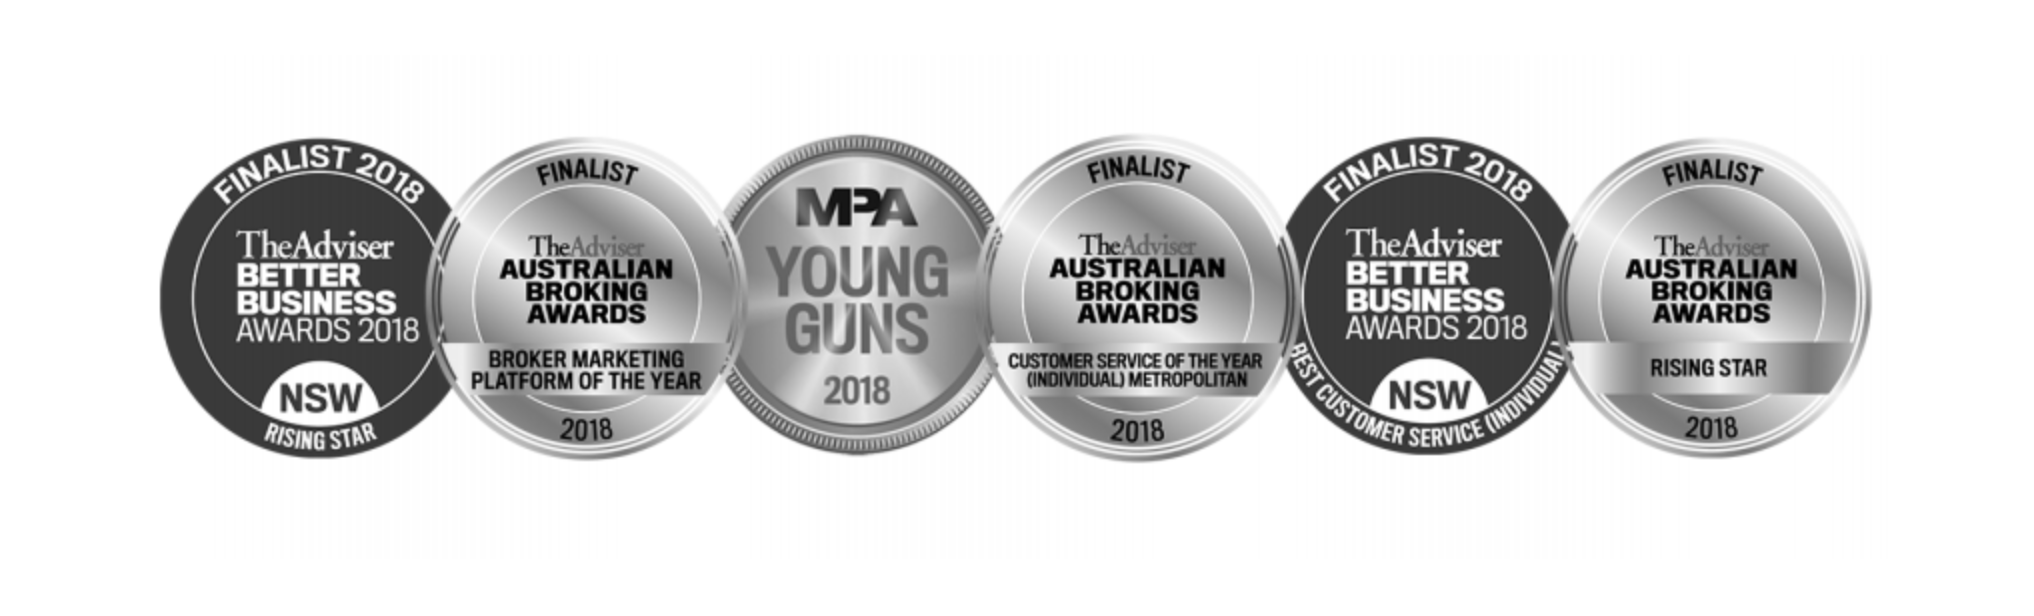 2018 Industry accolades - Black & White Finance - Peter Vassilis - Mortgage Broker Rose Bay.png